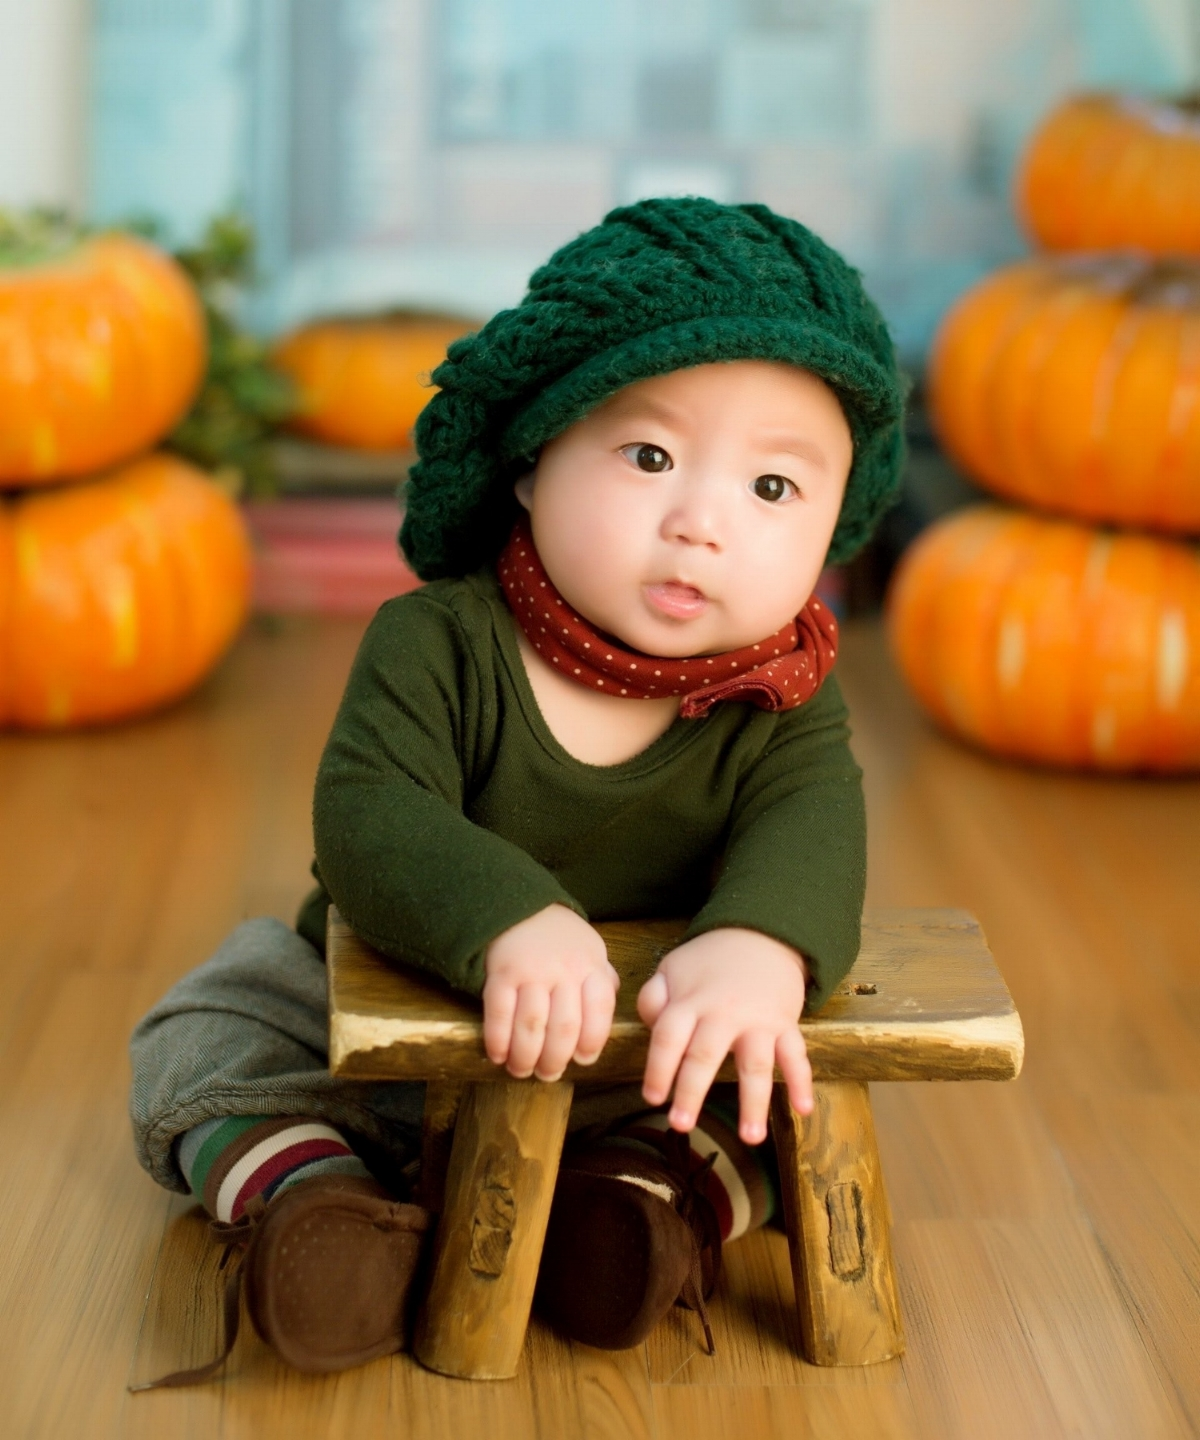 East Asian toddler wearing a green outfit and an oversized knitted hat, sits at a small wooden table in front of piles of pumpkins.